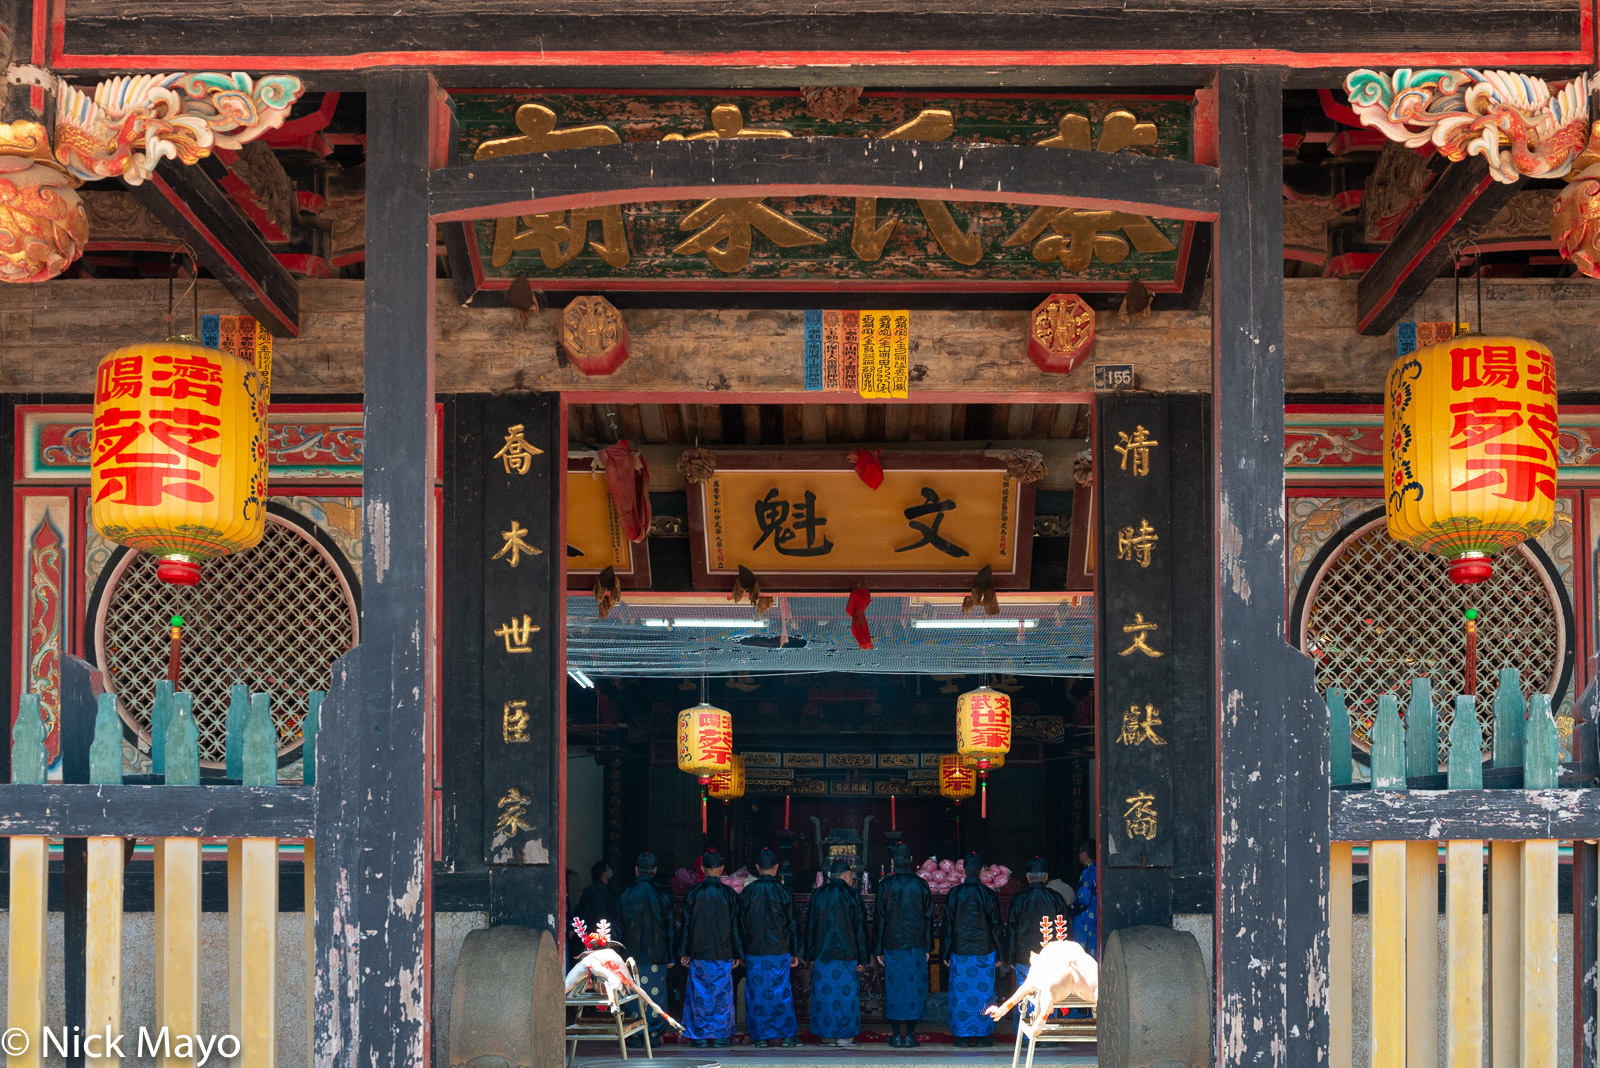 The semi annual religious ritual held by the Tsai clan at the temple in Qionglin village on Kinmen.